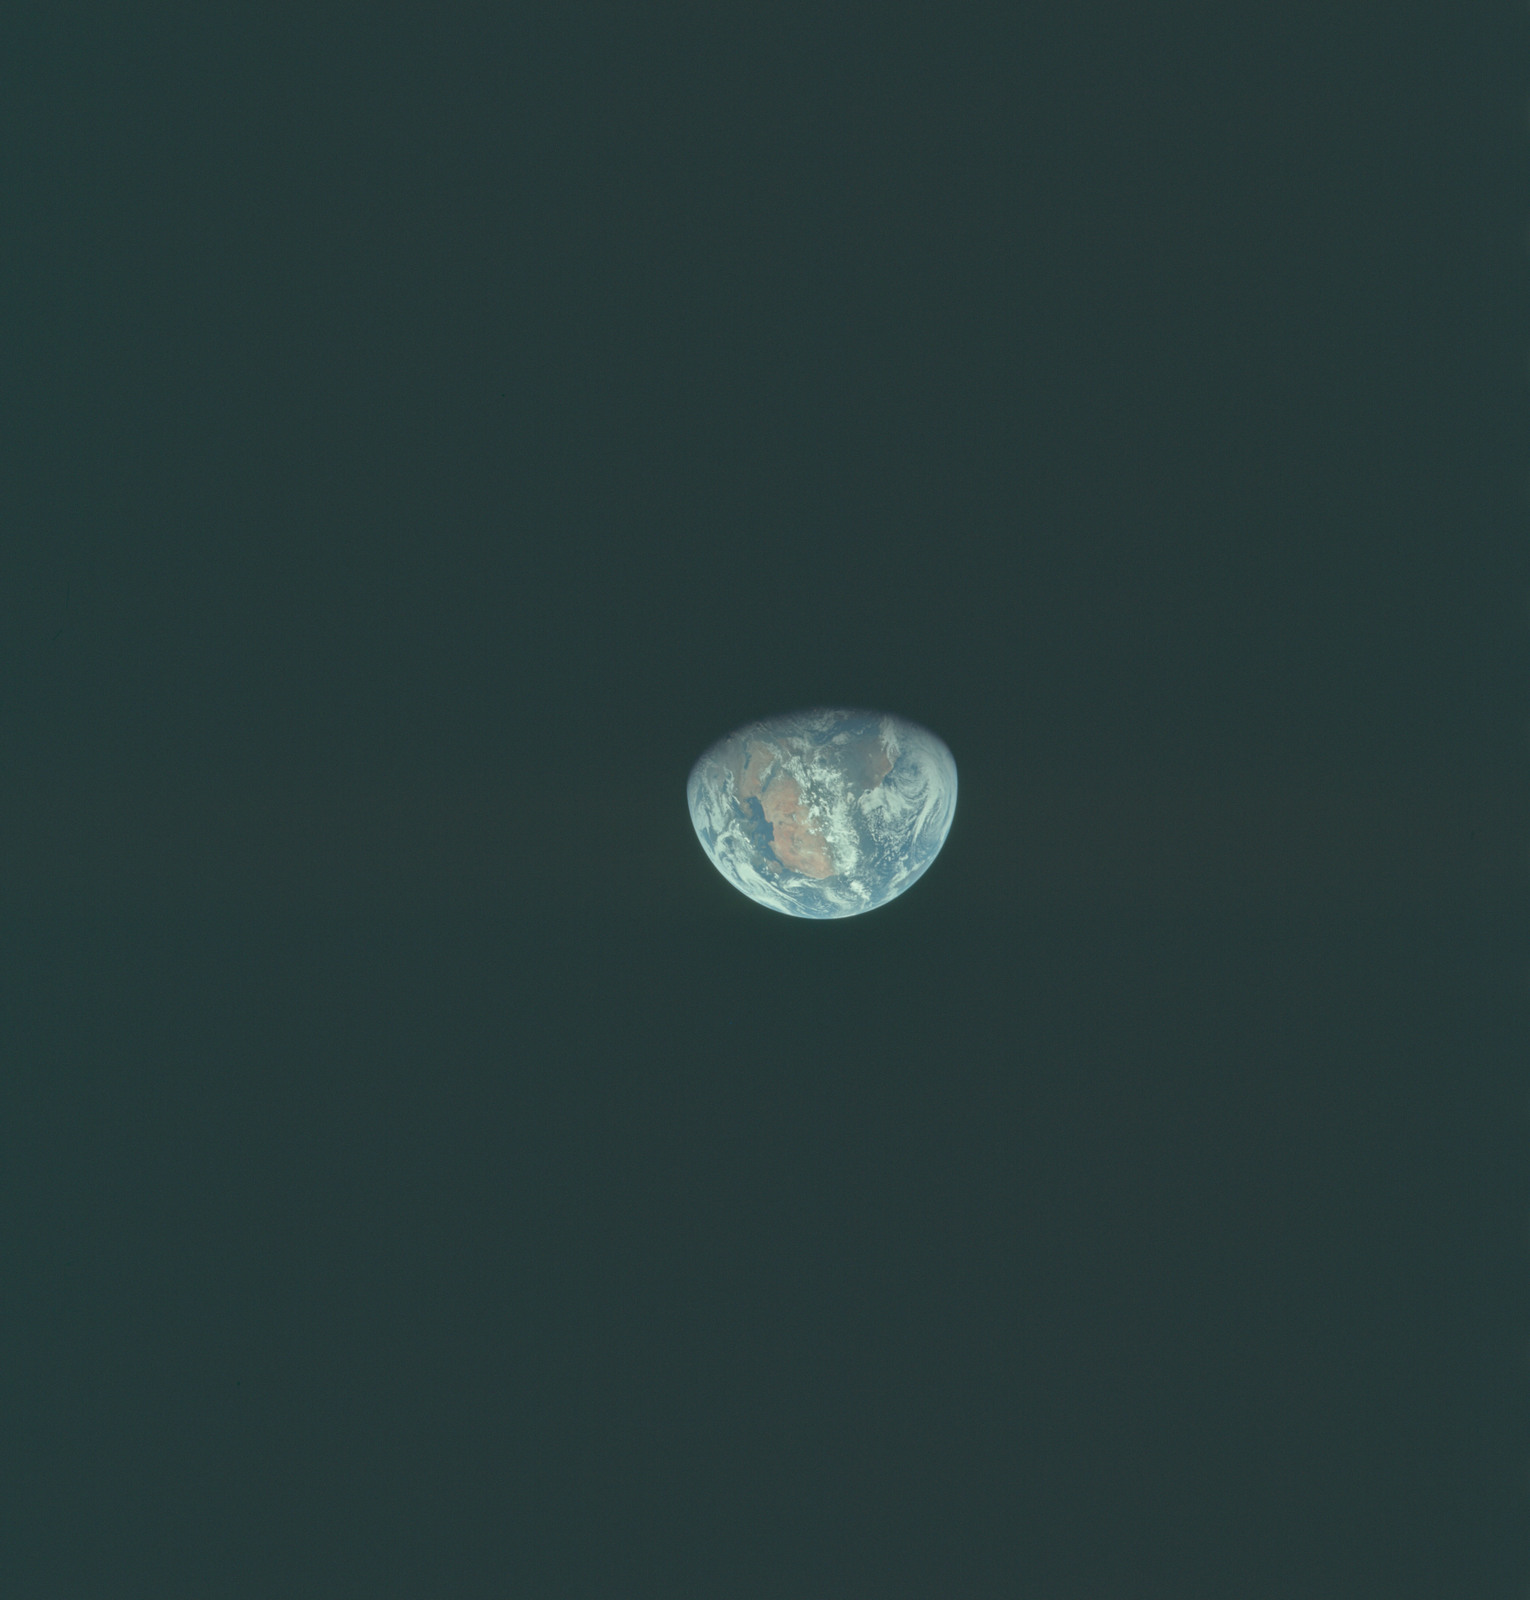 AS11-36-5376 - Apollo 11 - Apollo 11 Mission image - Earth view over Africa